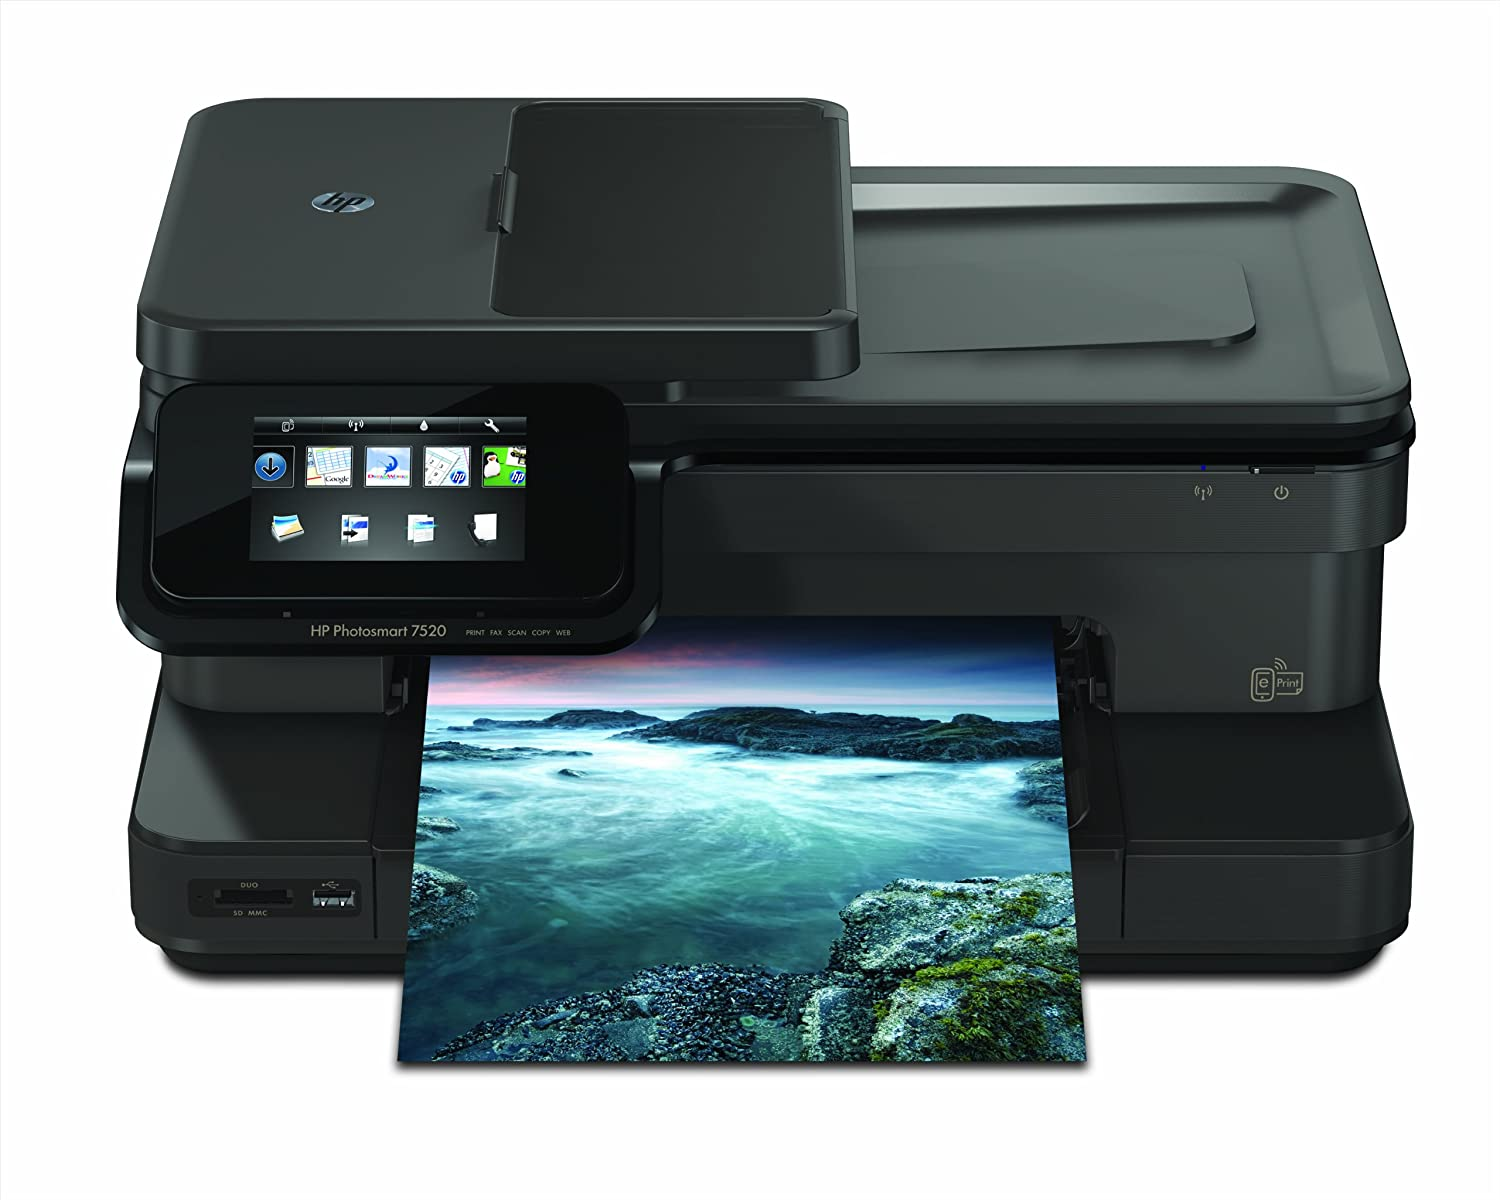 HP Photosmart 7520 e-All-in-One Tintenstrahl